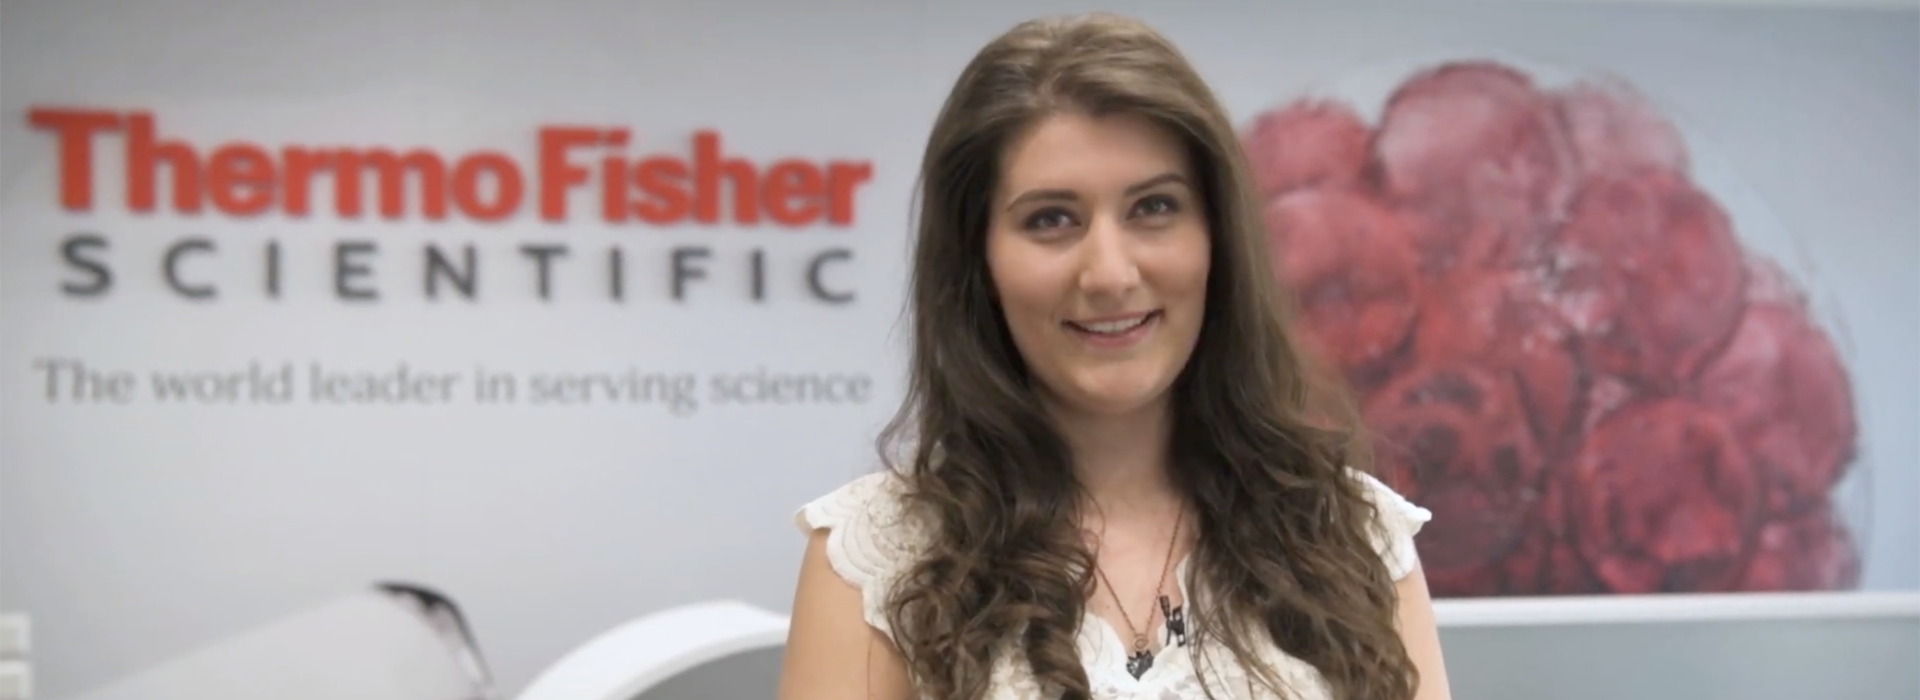 Thermo Fisher Scientific The world leader in serving science